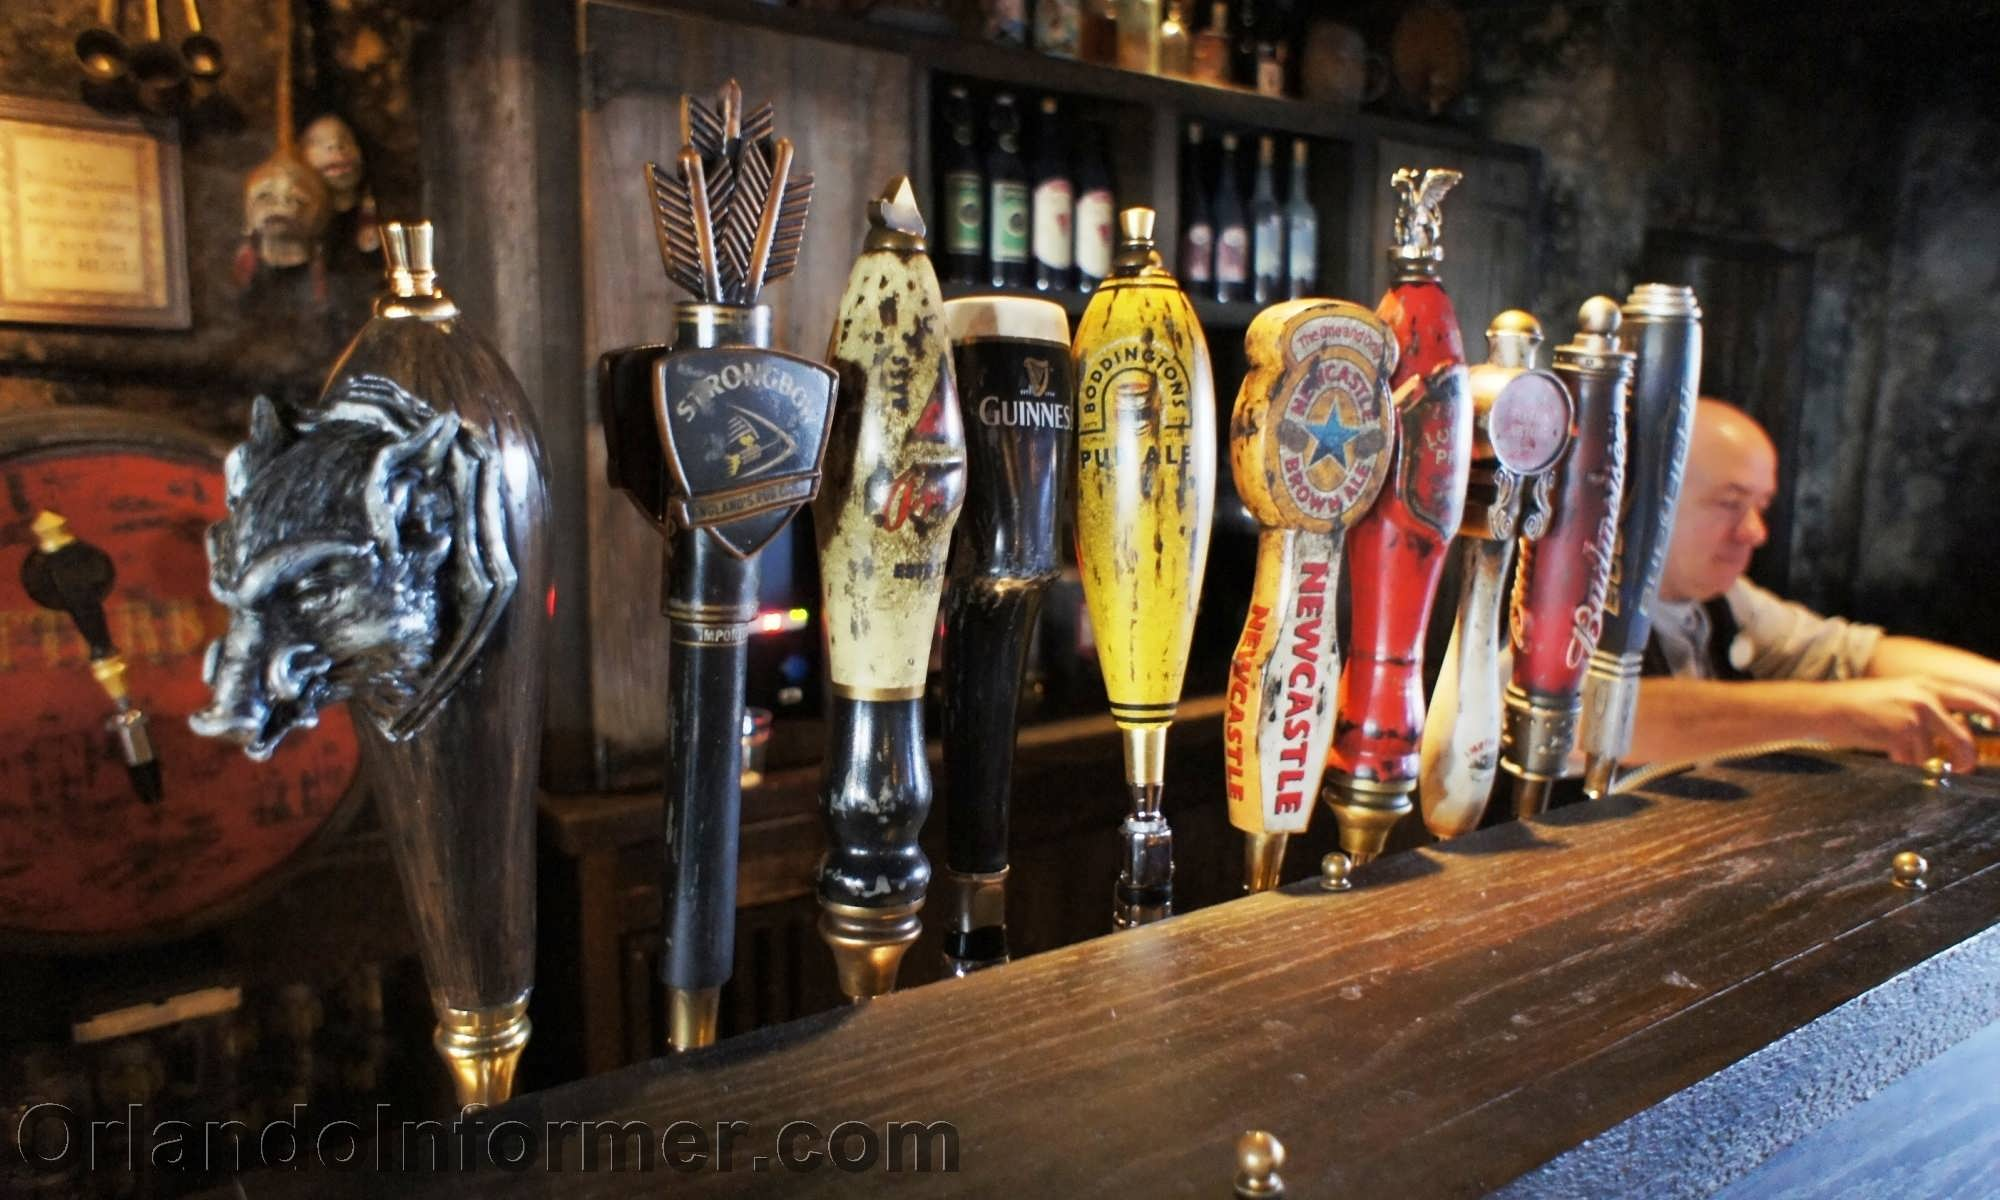 Hog's Head: The brews on tap.